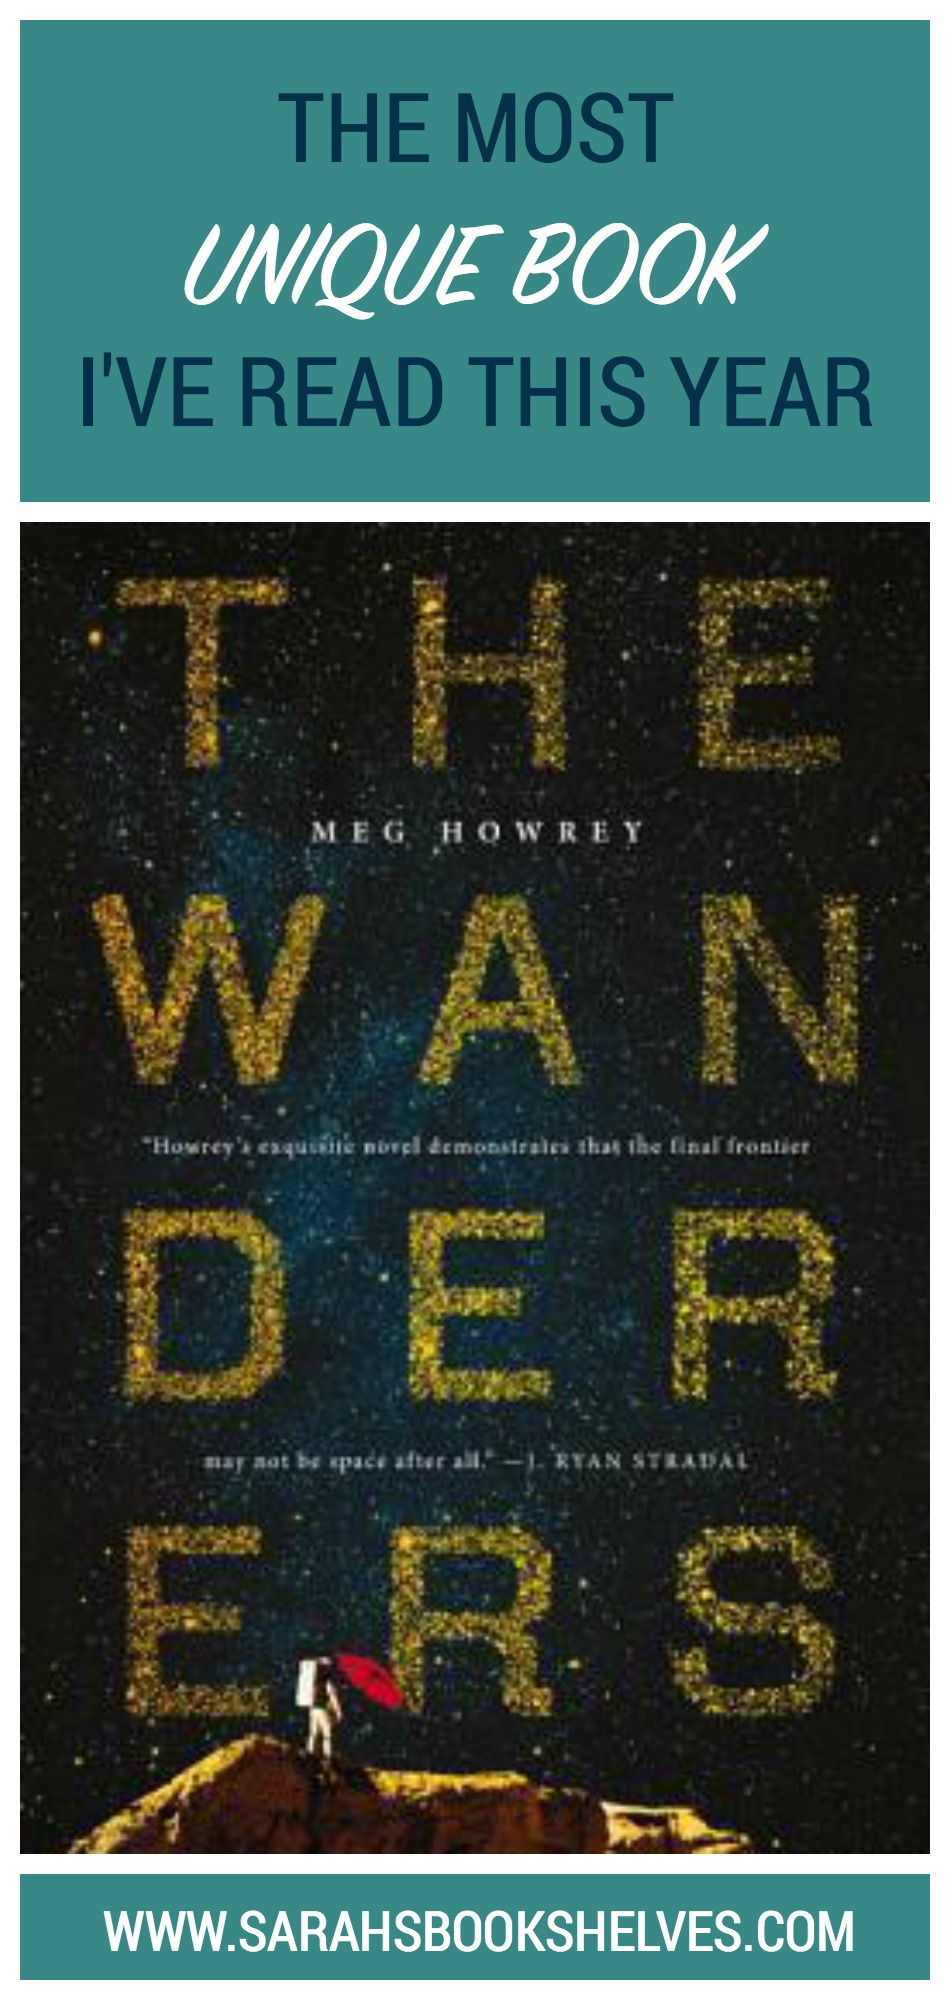 The Wanderers by Meg Howrey: A more literary, psychological version of The Martian